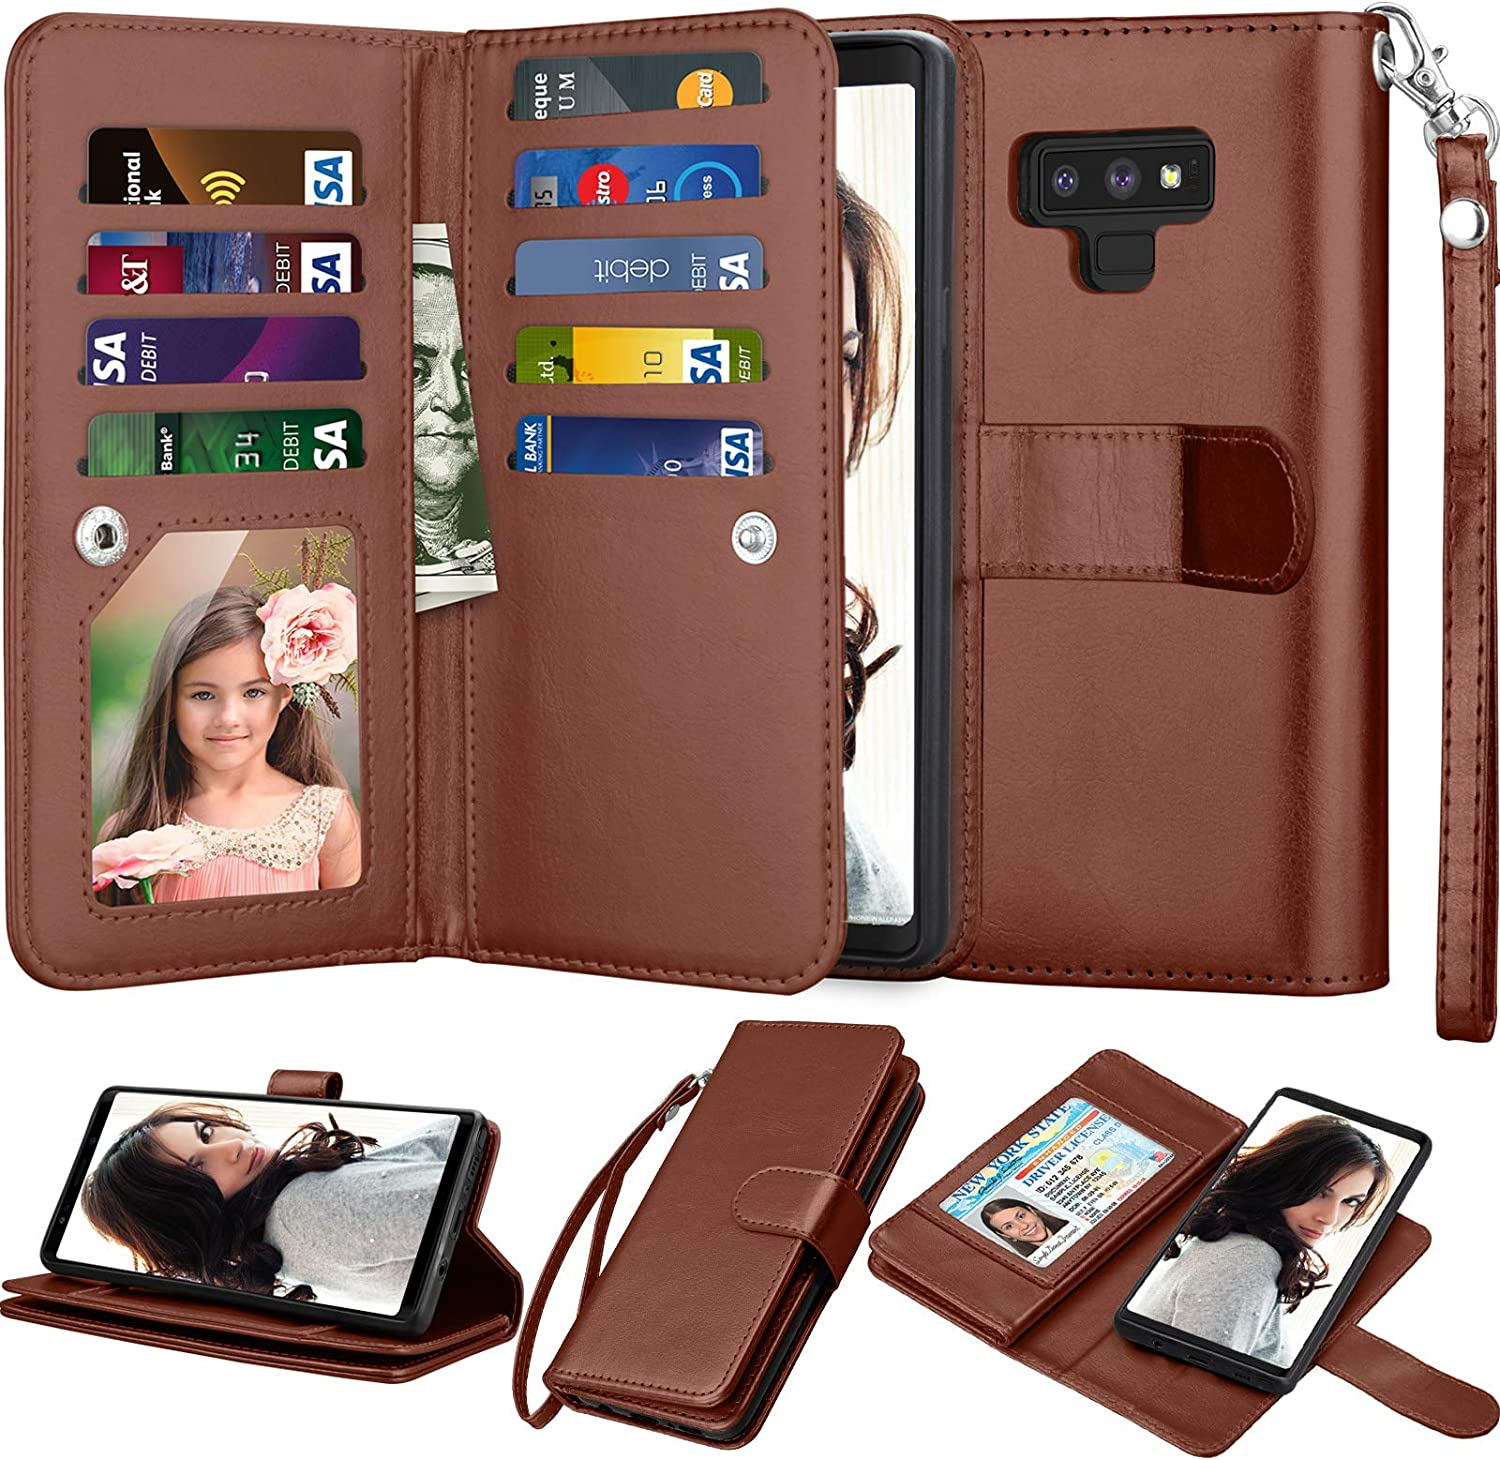 Njjex for Galaxy Note 9 Wallet Case, for Note 9 Case, Luxury PU Leather [9 Card Slots] ID Credit Folio Flip Cover [Detachable][Kickstand] Magnetic Phone Case & Wrist Strap for Samsung Note 9 [Brown]